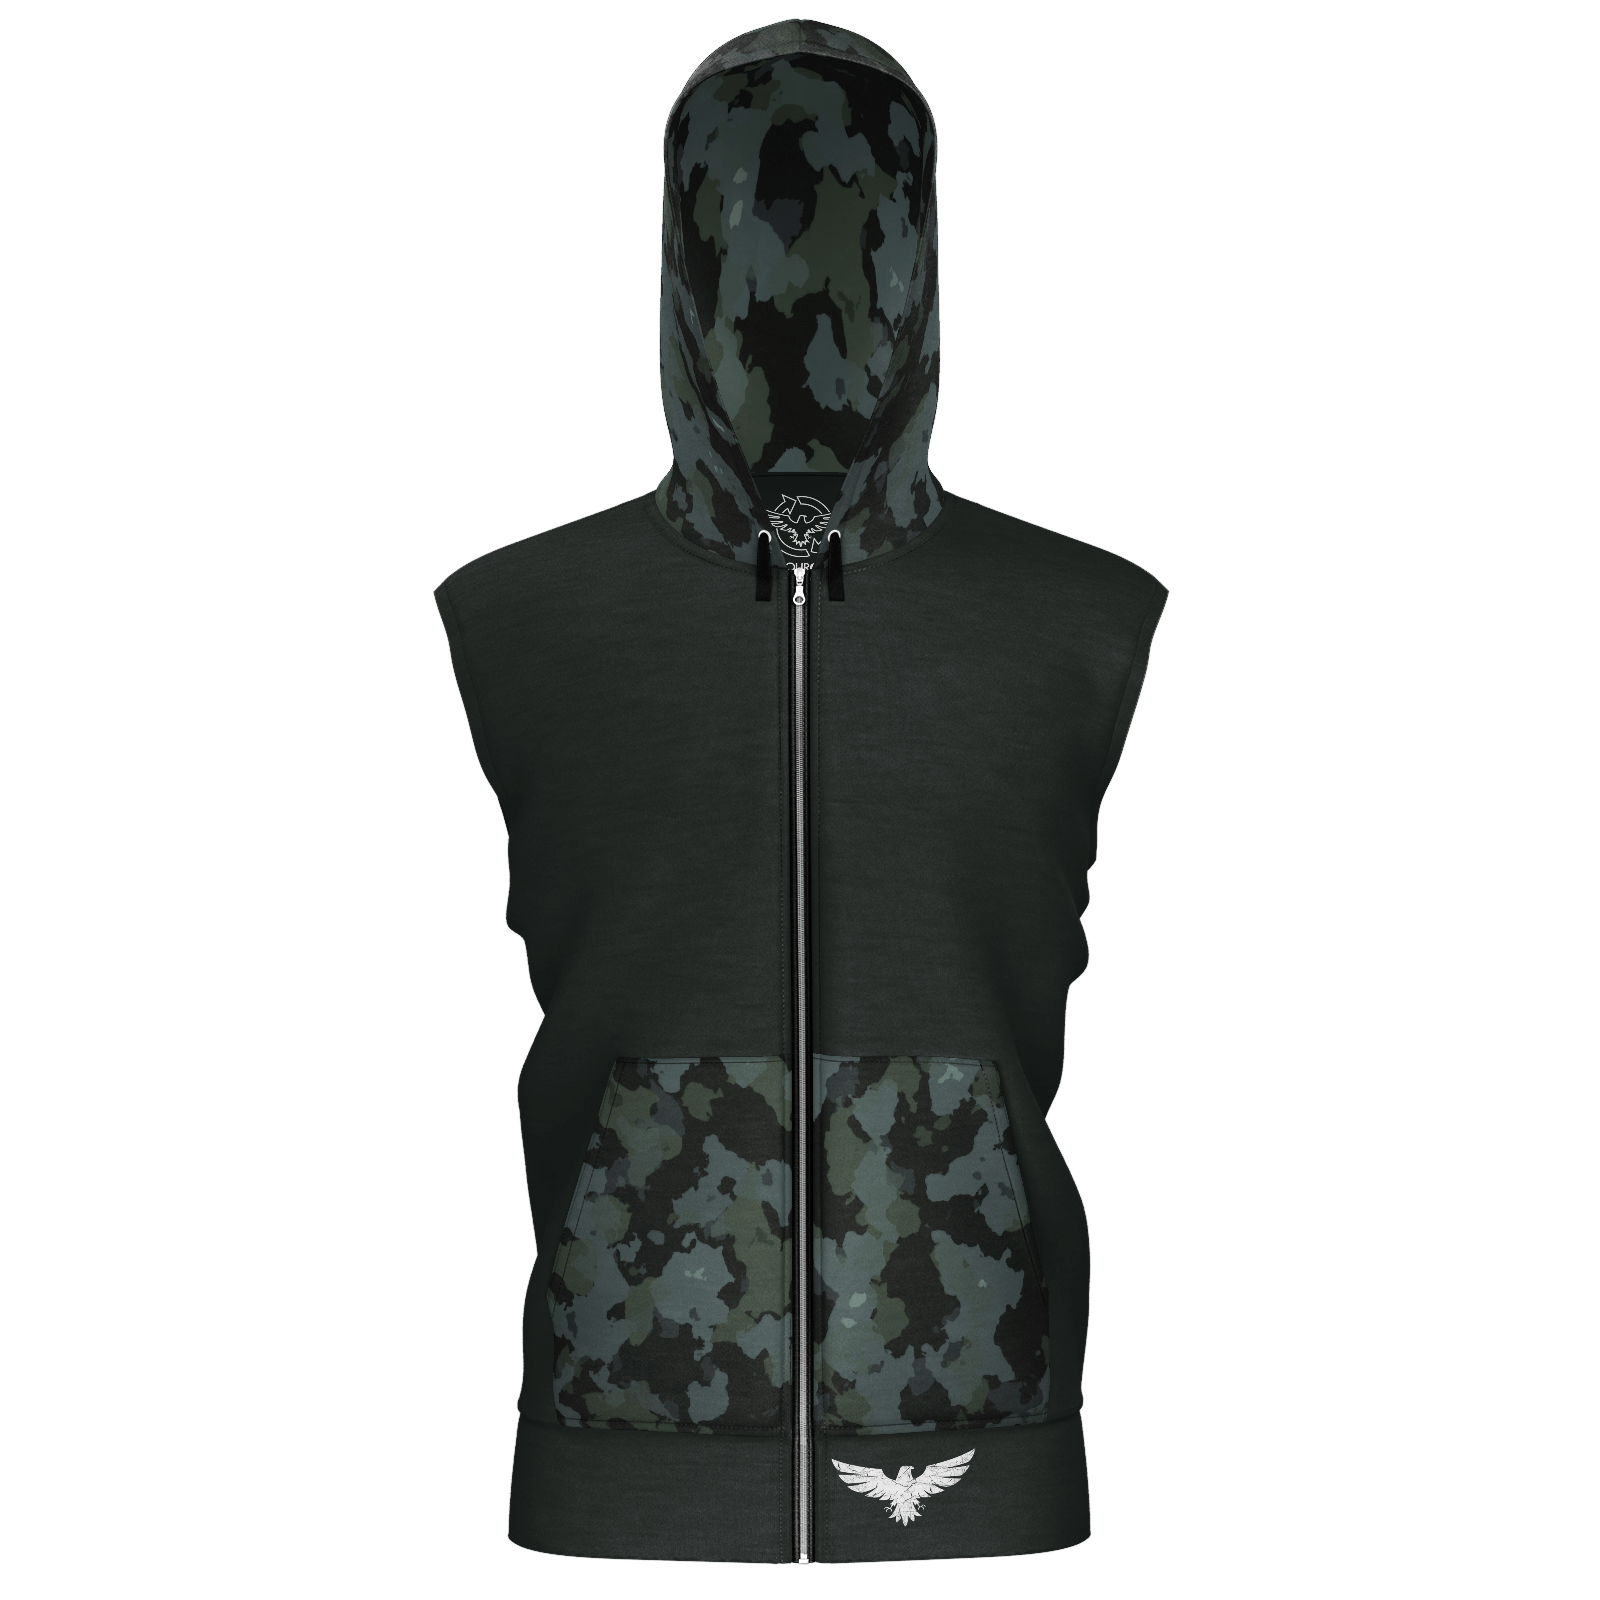 Men's Black Camo Sustainable Sleeveless Tahoe Zip-Up Hoodie - Find Your Coast Supply Co.